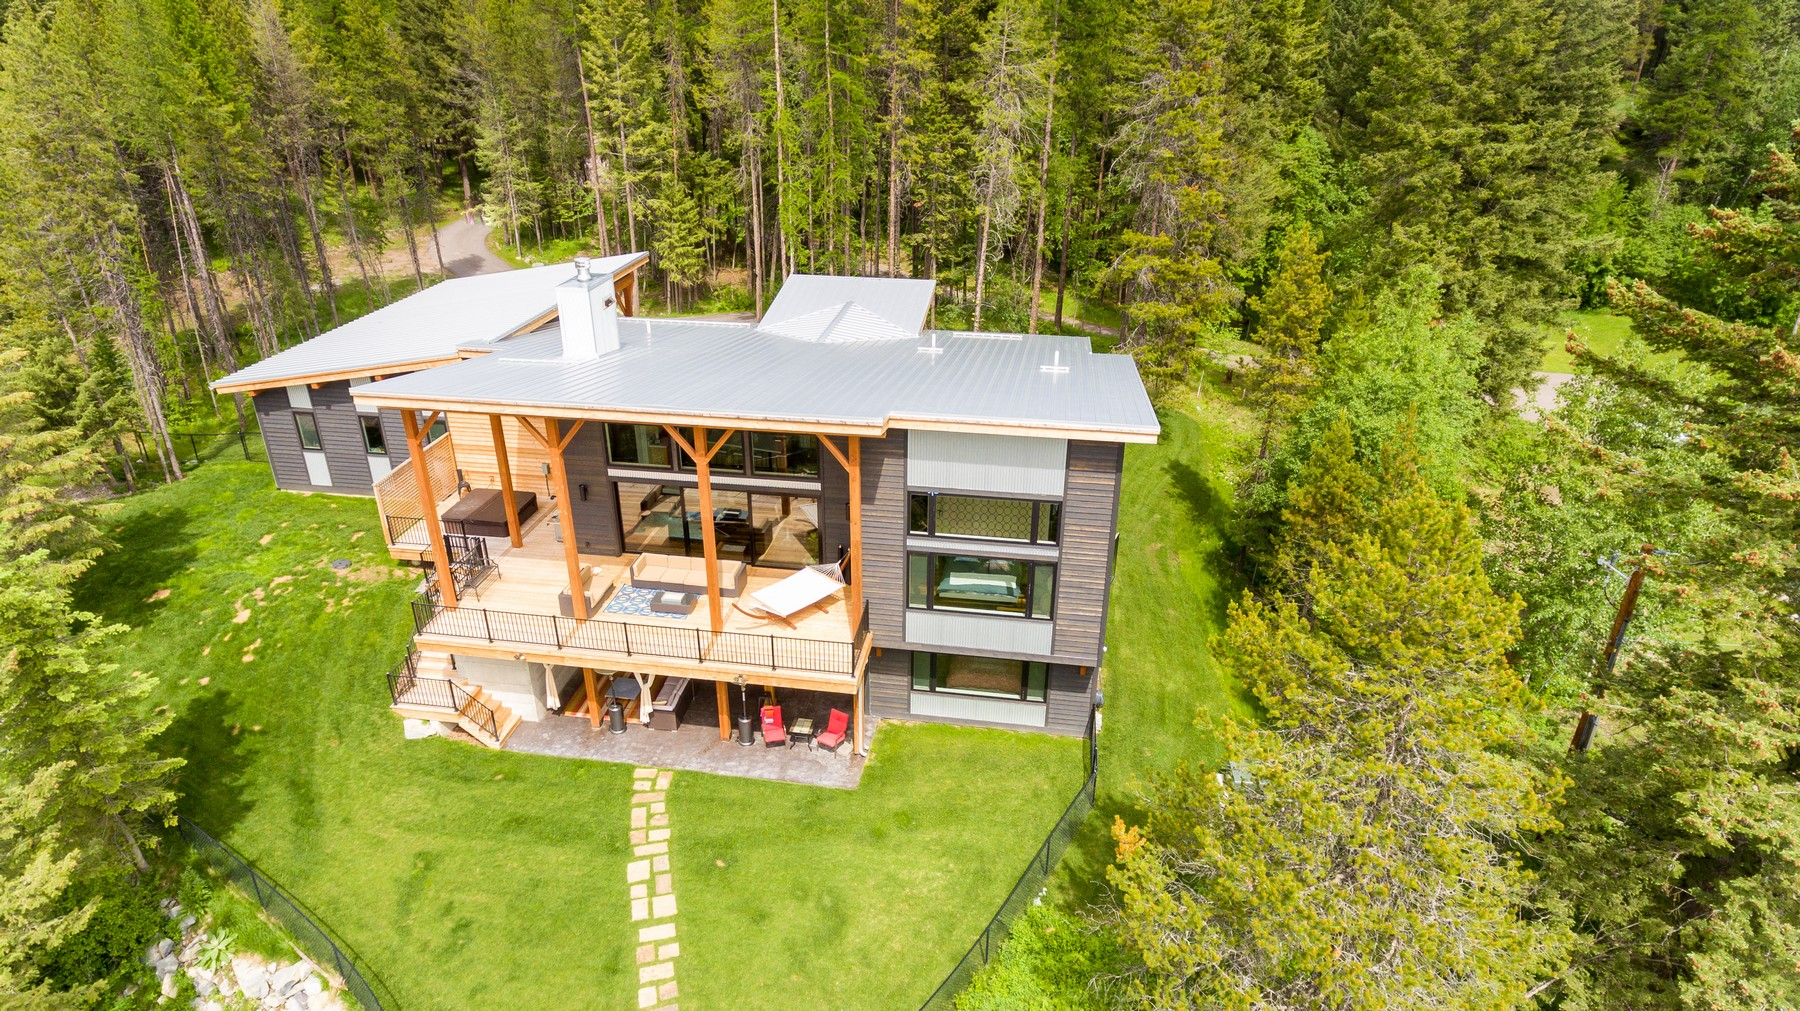 Additional photo for property listing at 664 Northwoods Dr , Whitefish, MT 59937 664  Northwoods Dr Whitefish, Montana 59937 United States